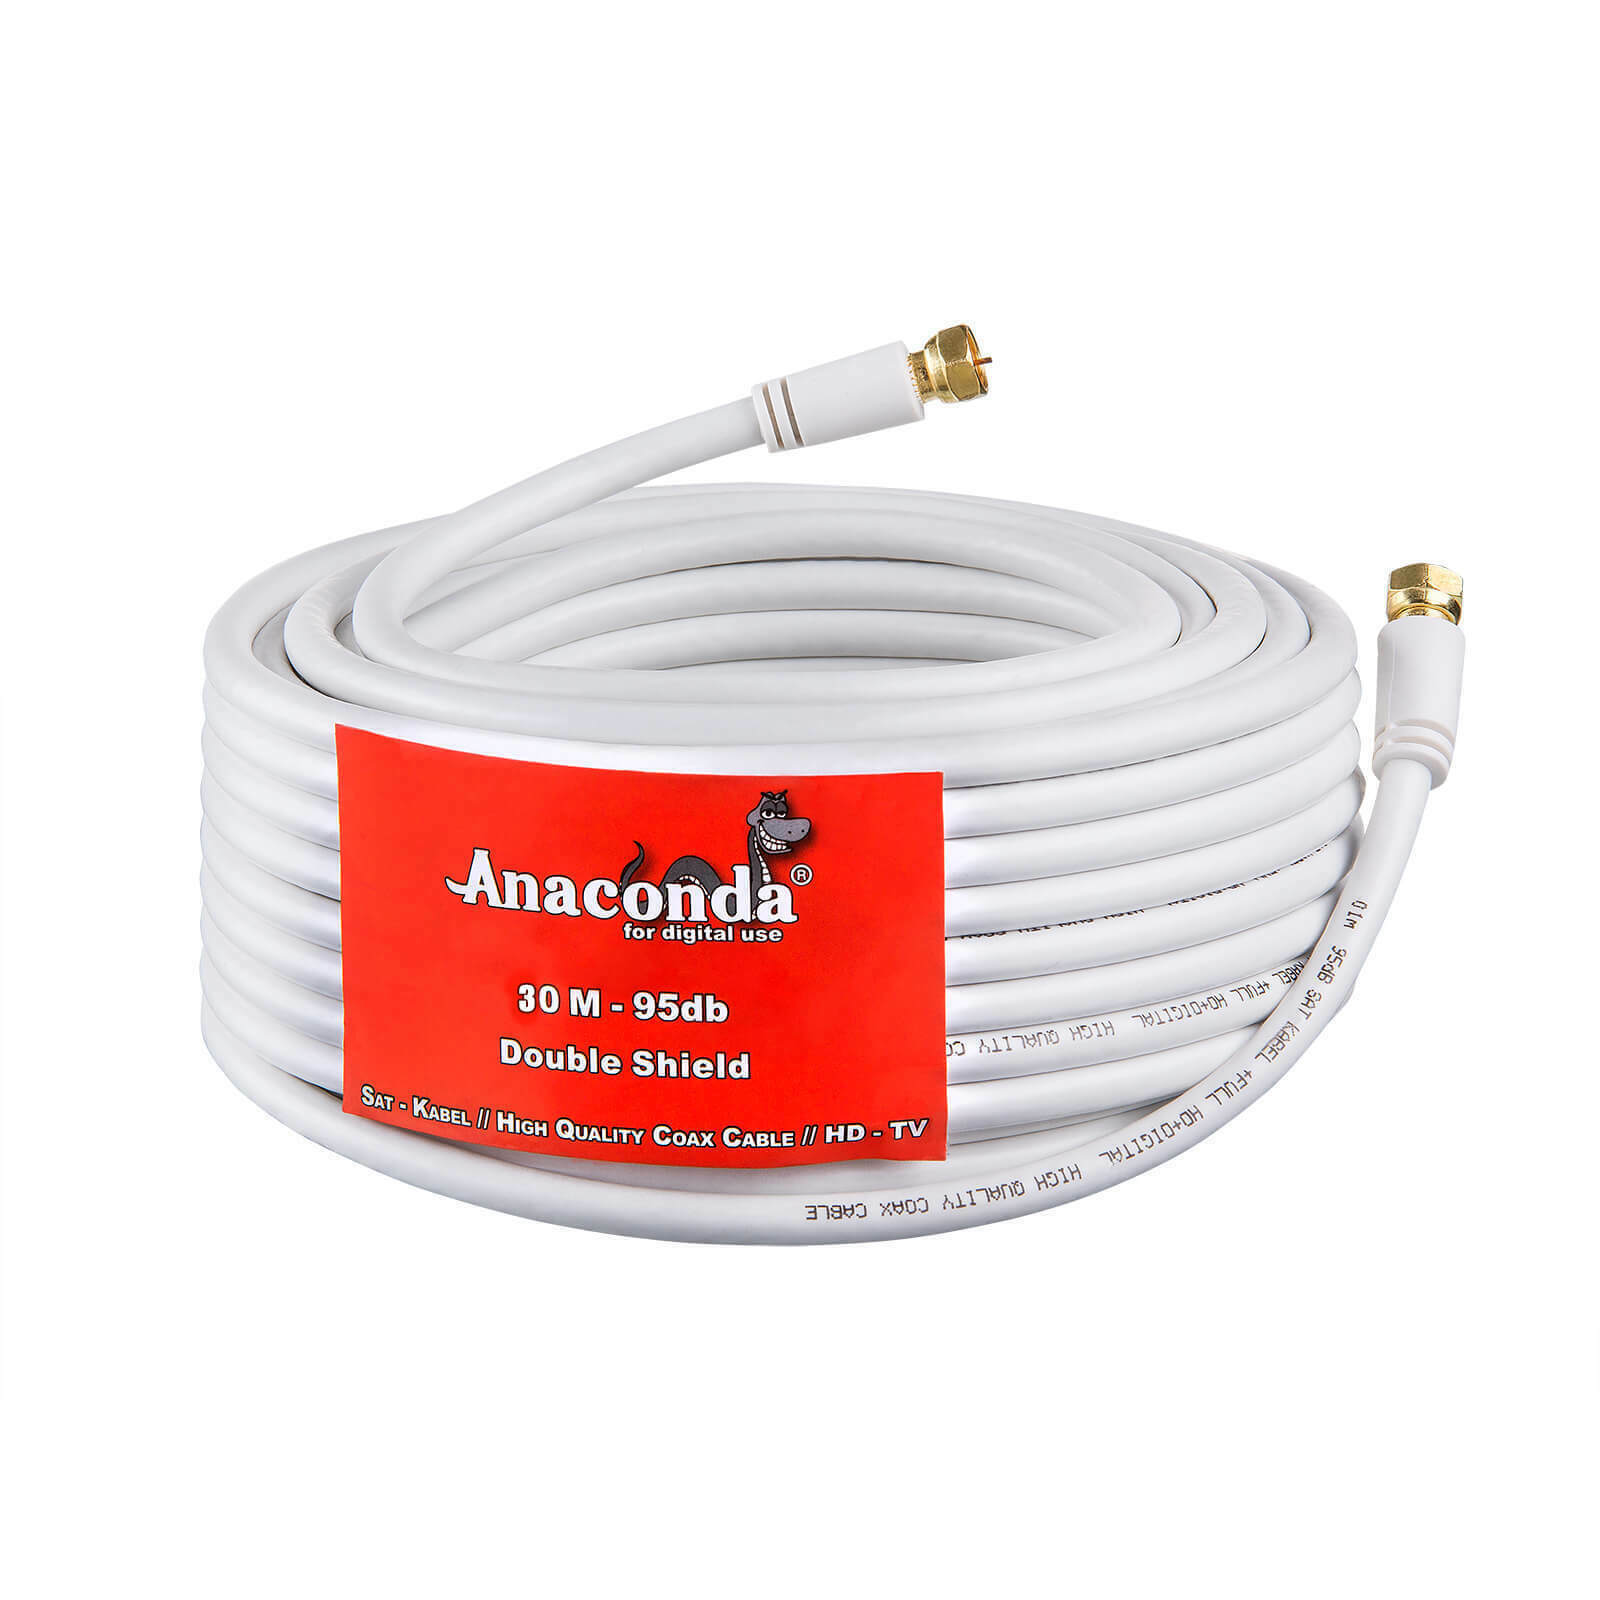 30m SAT HD DIGITAL KABEL Antennenkabel Koaxialkabel Full HDTV 3D HD+ DVB-S2 SKY